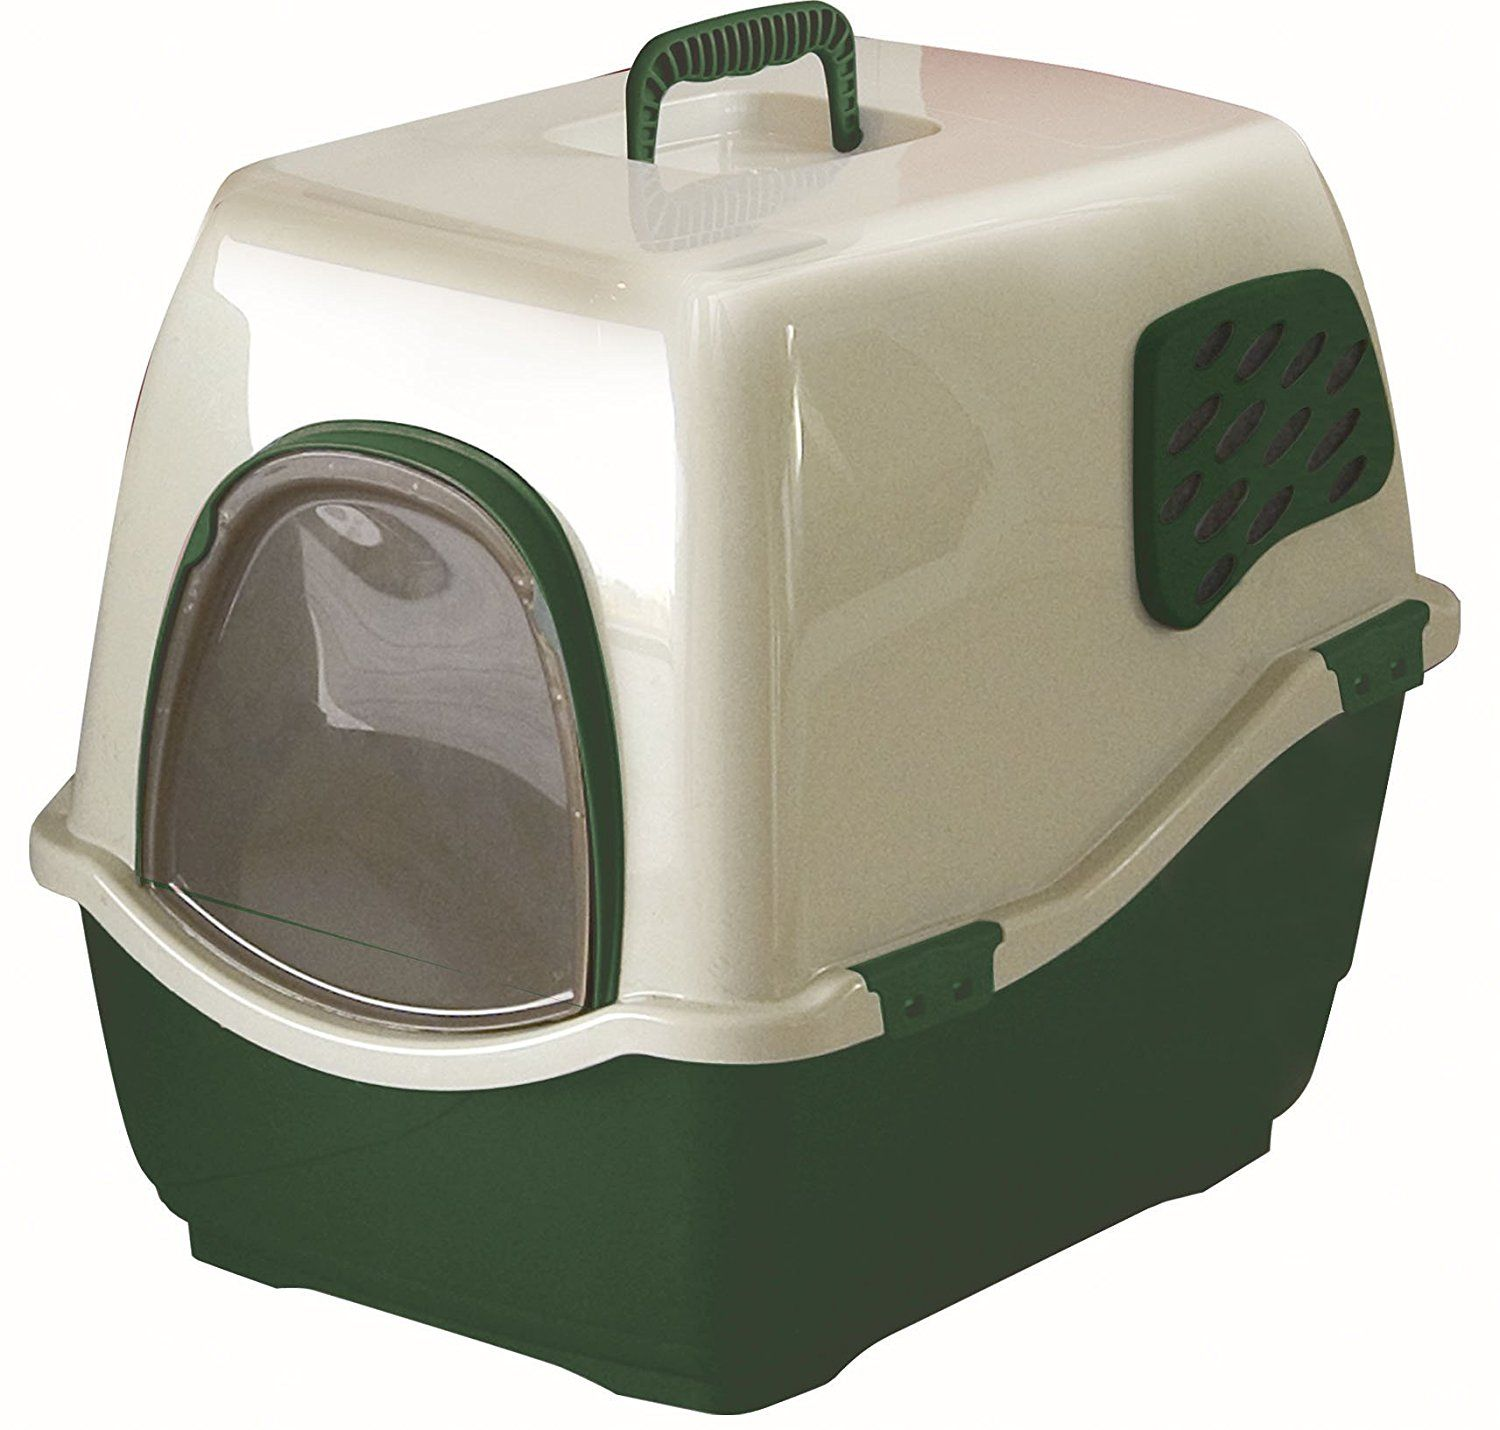 Marchioro Bill F Covered Litter Pan With Filter Discover This Special Cat Product Click The Image Cat Cat Litter Pan Cat Litter Cat Litter Box Furniture